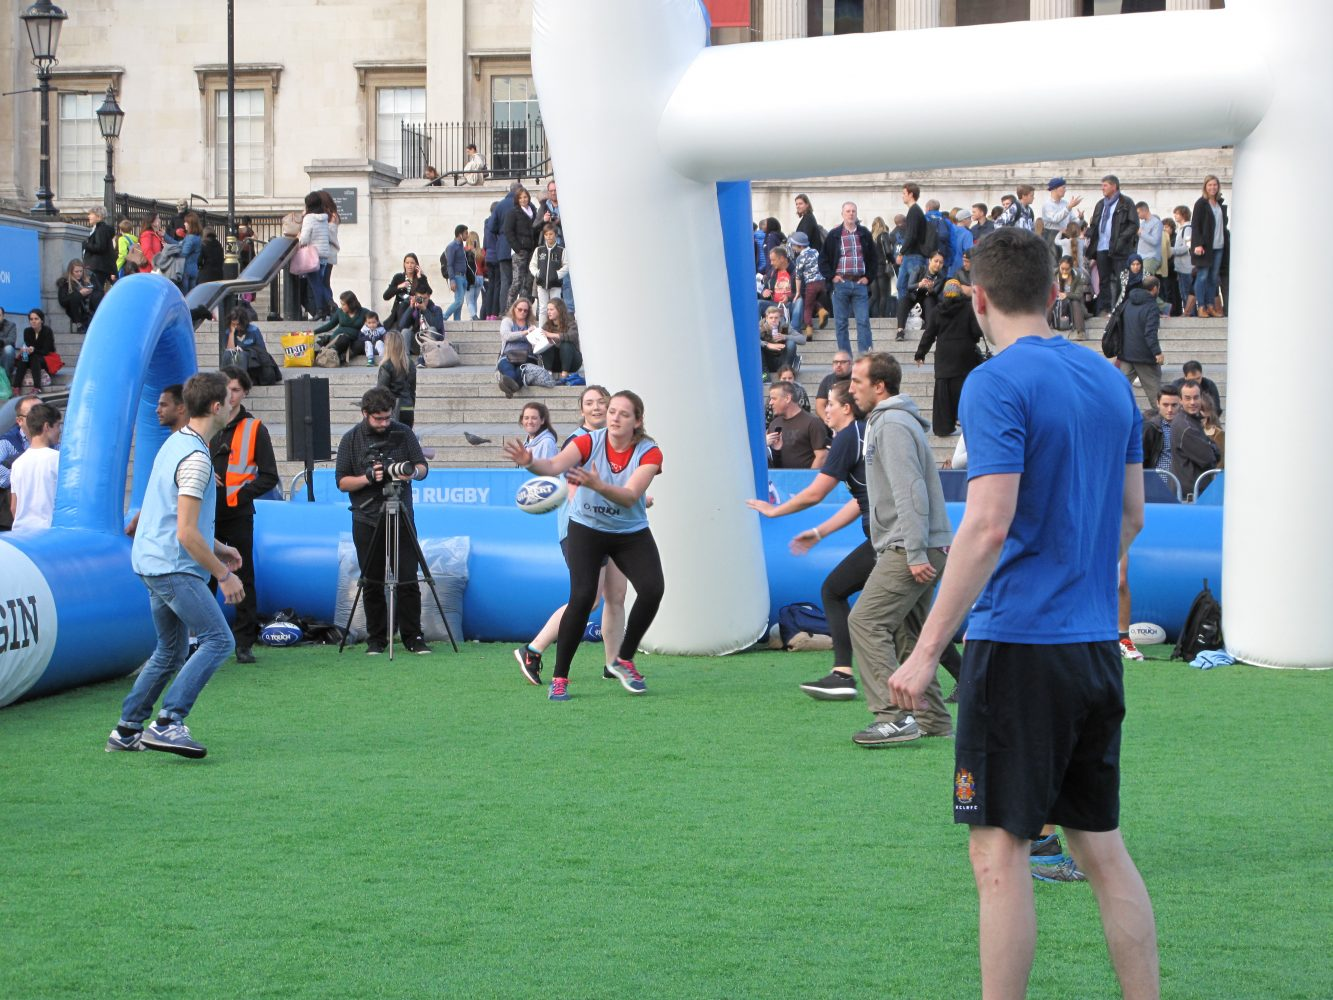 Rugby World Cup Trafalgar Square